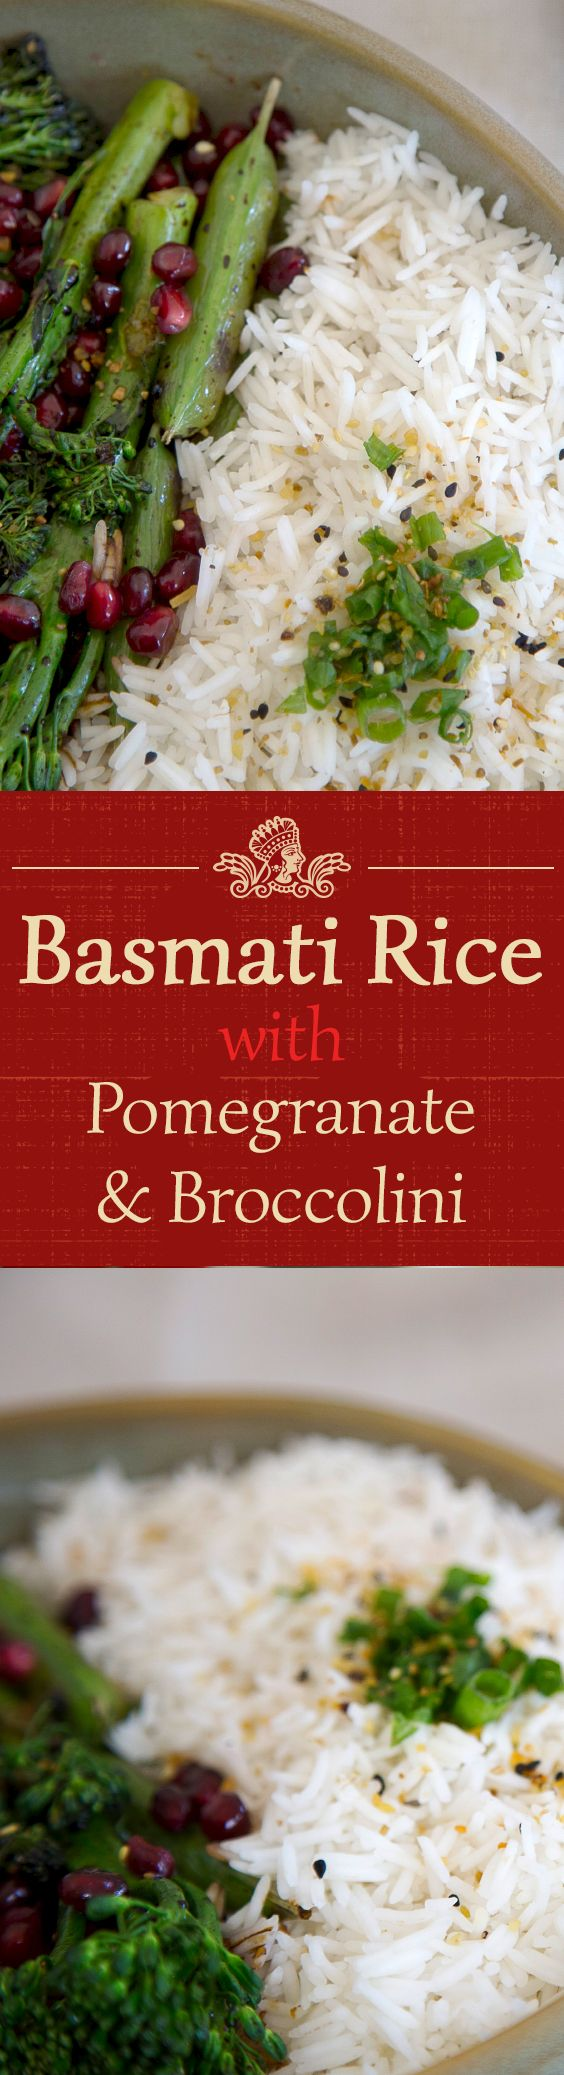 Pomegranate broccolini with Royal Basmati Rice is a feast for the eyes and tastebuds.